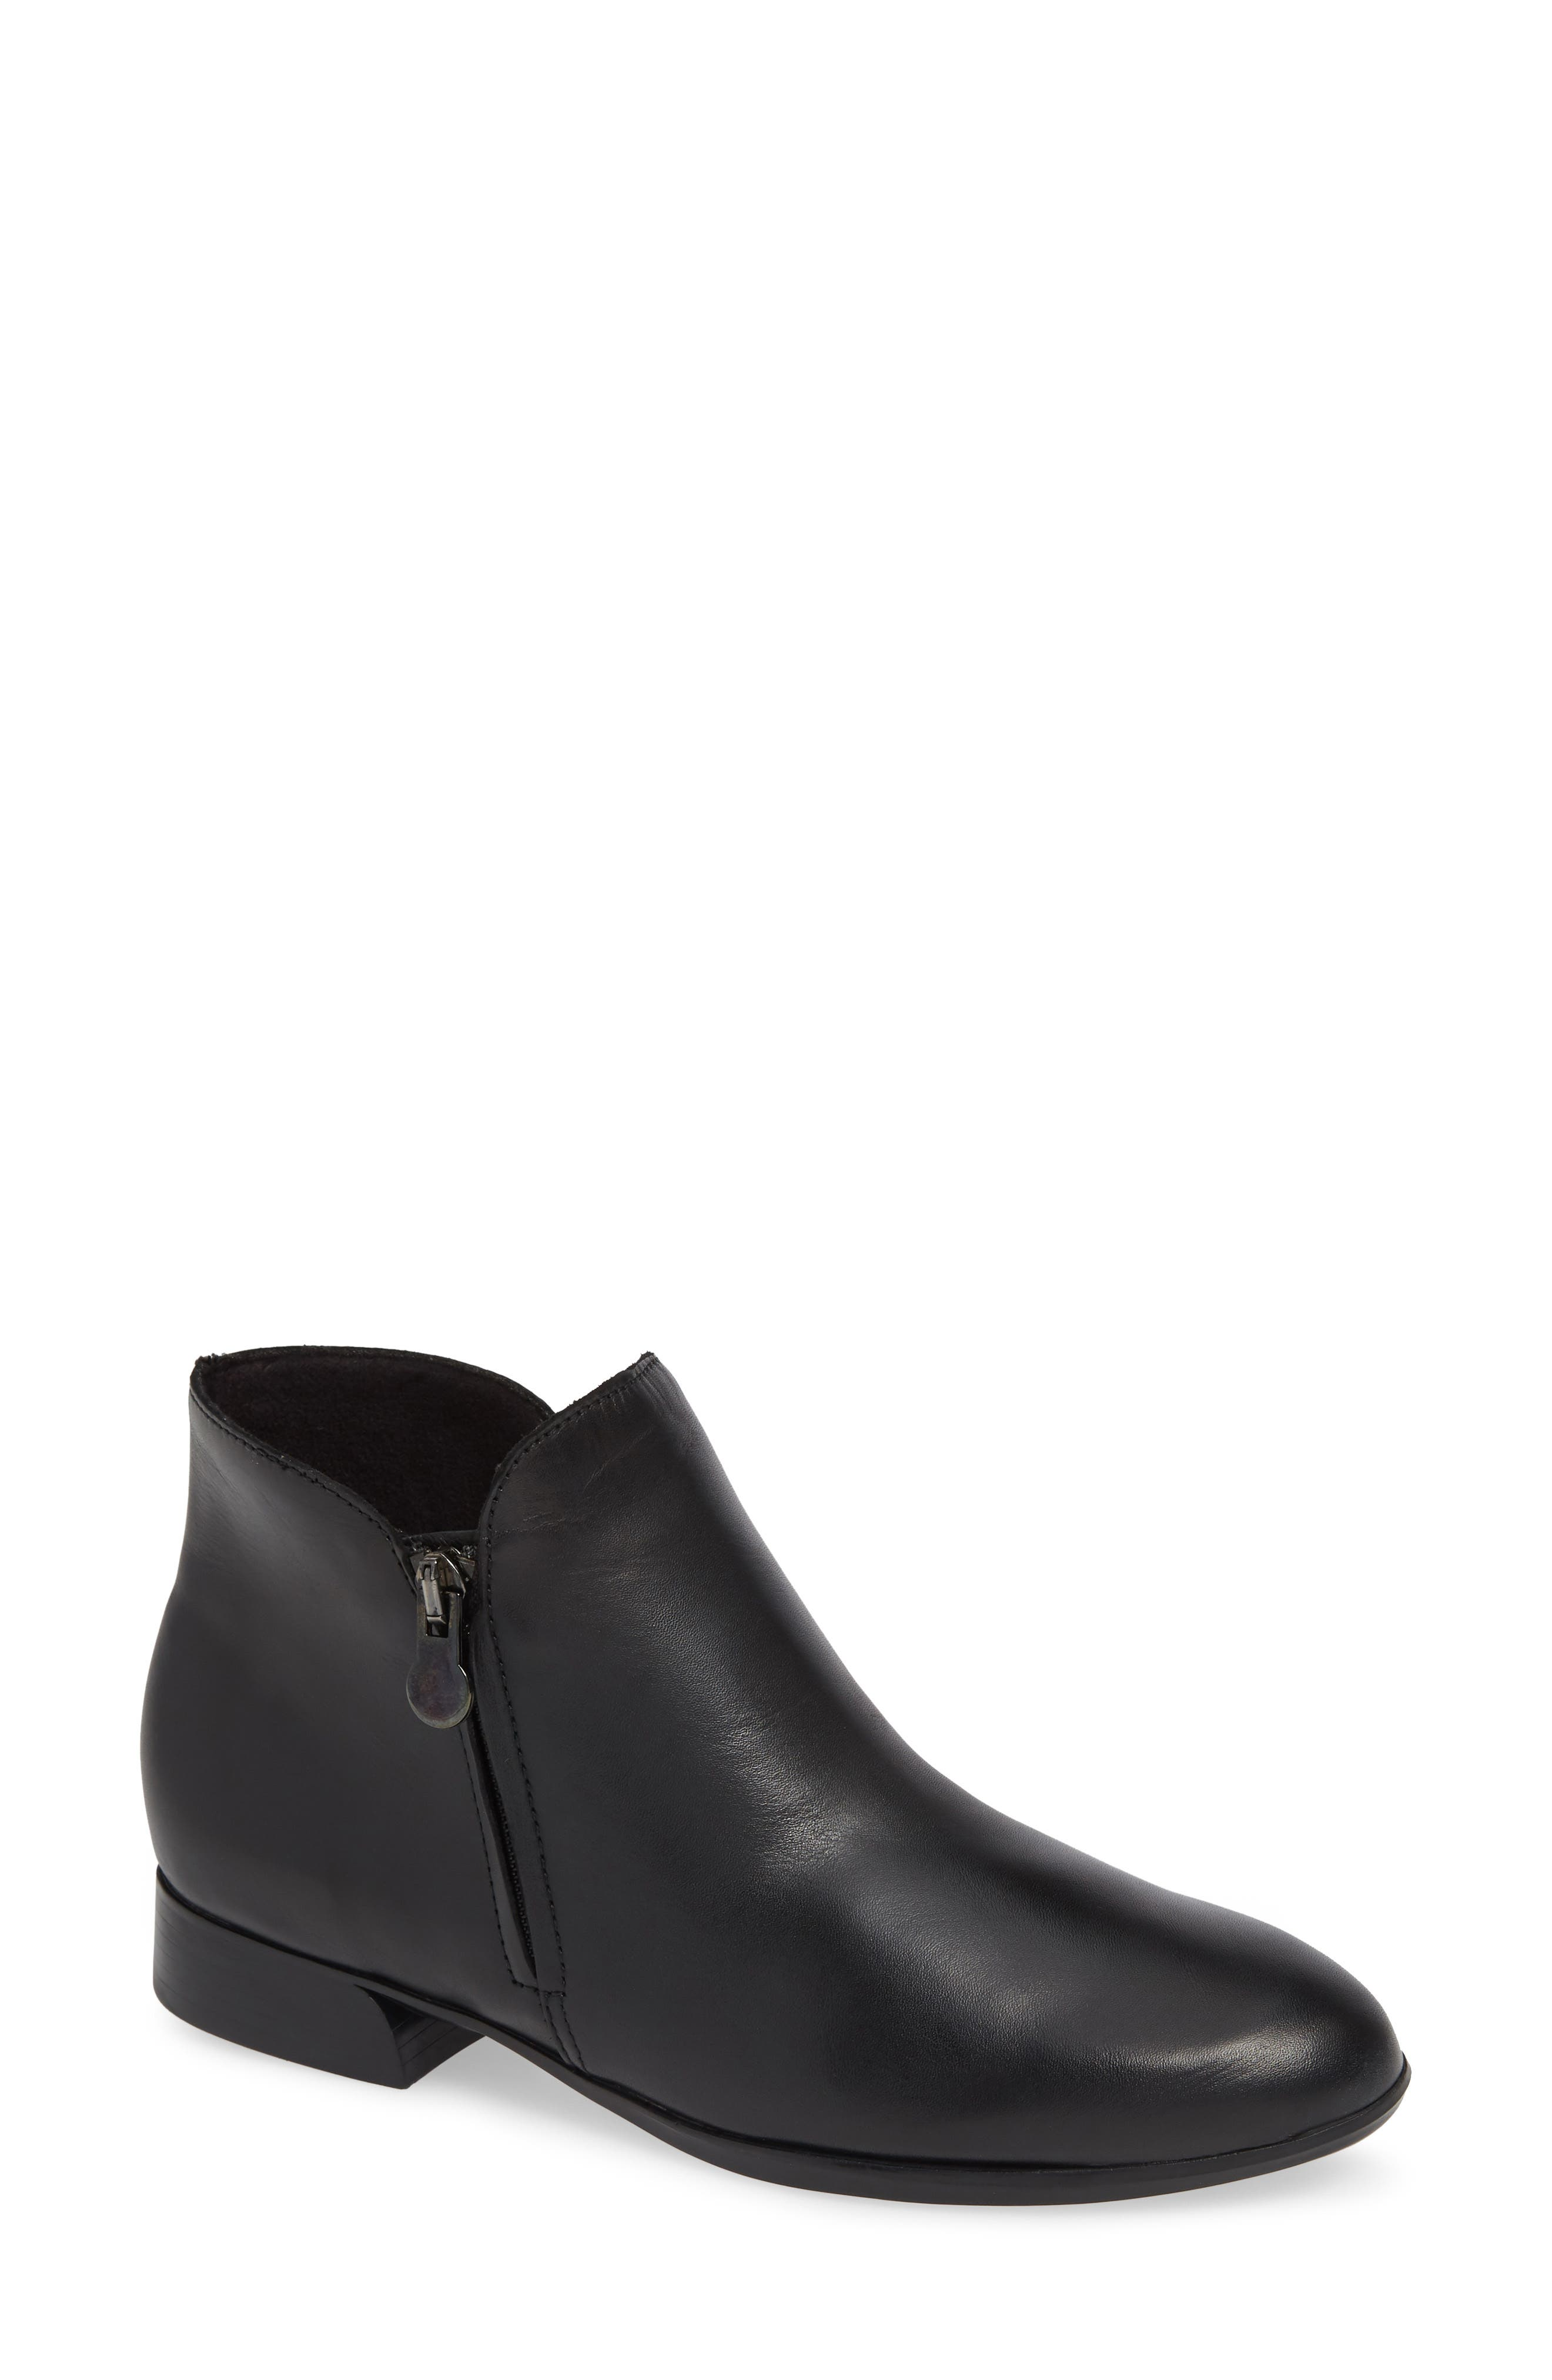 Women's Munro Shoes   Nordstrom